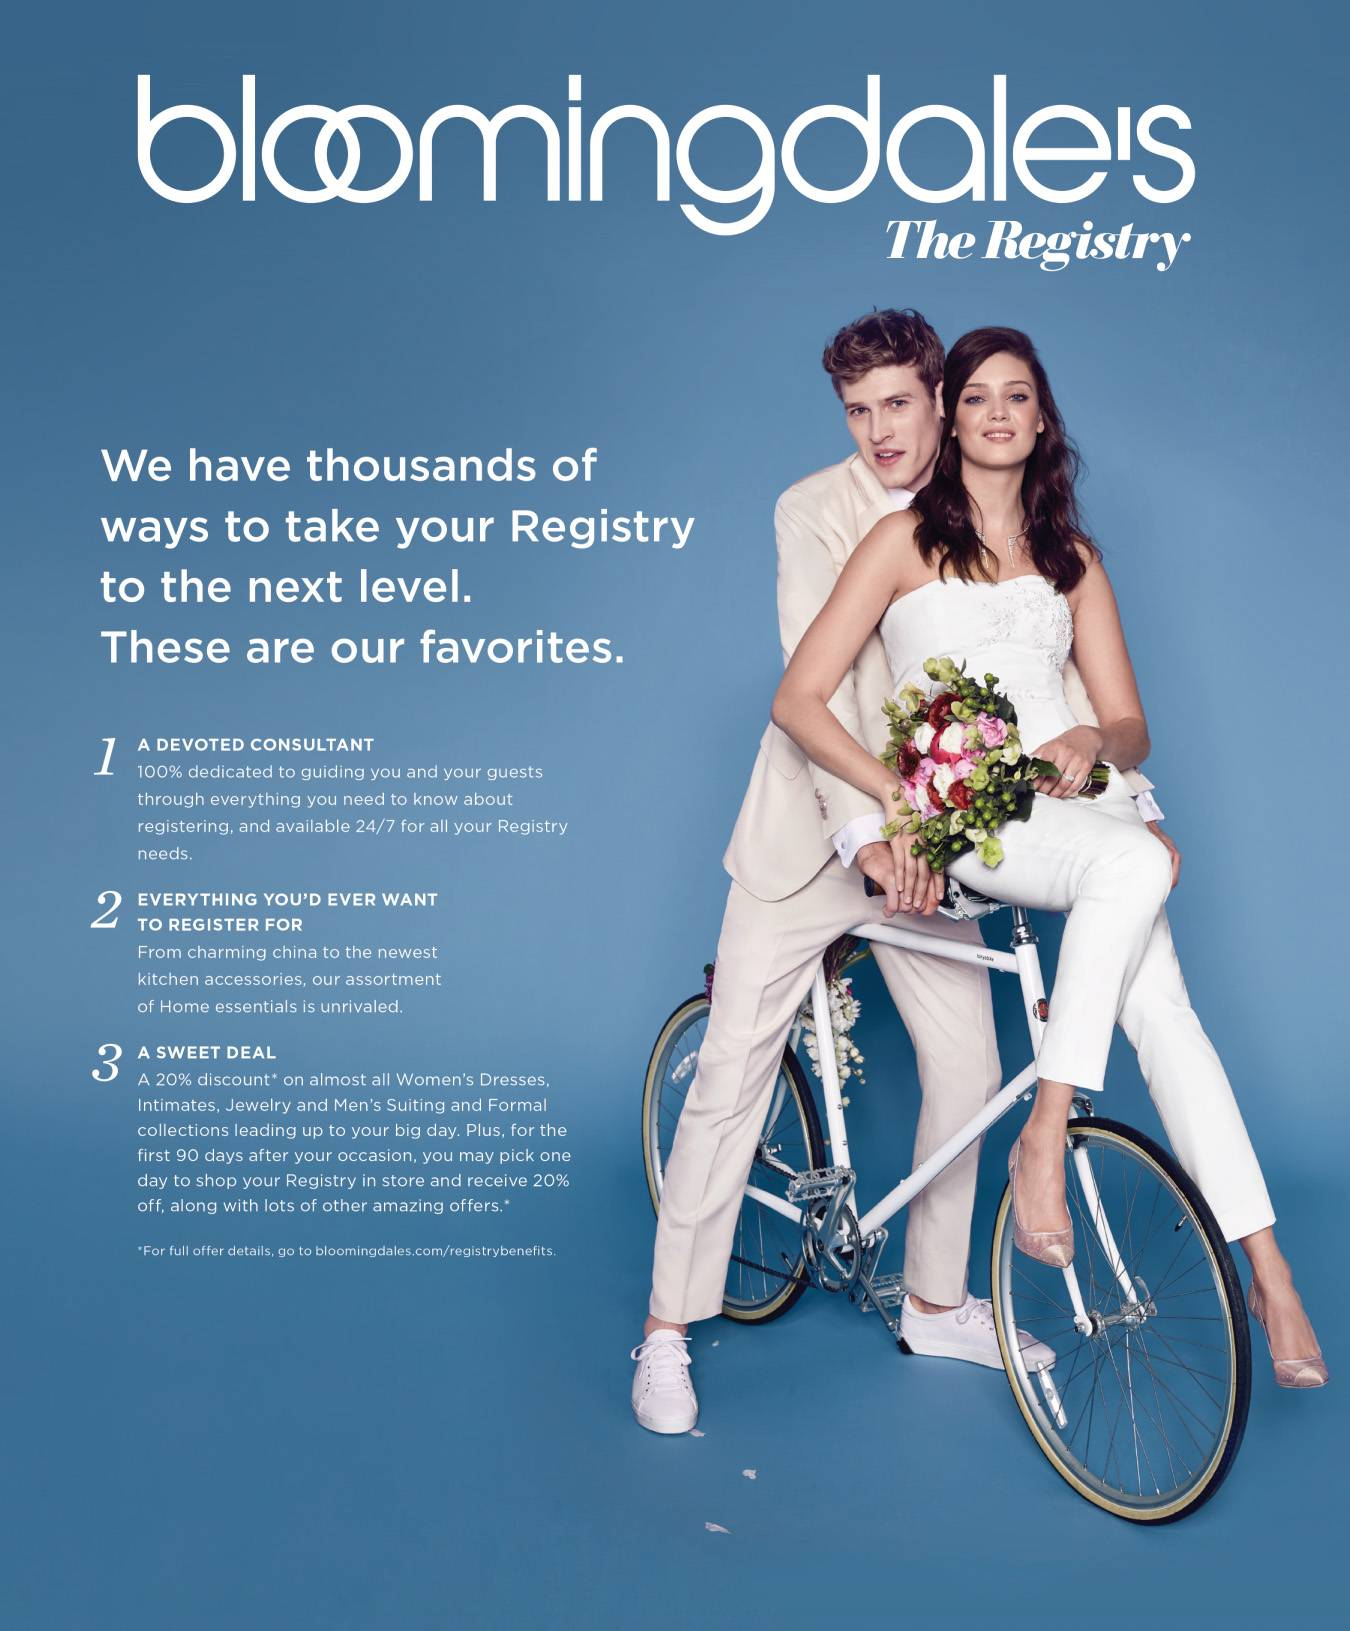 Bloomingdales the registry chicagostyle weddings bloomingdales wedding registry junglespirit Images